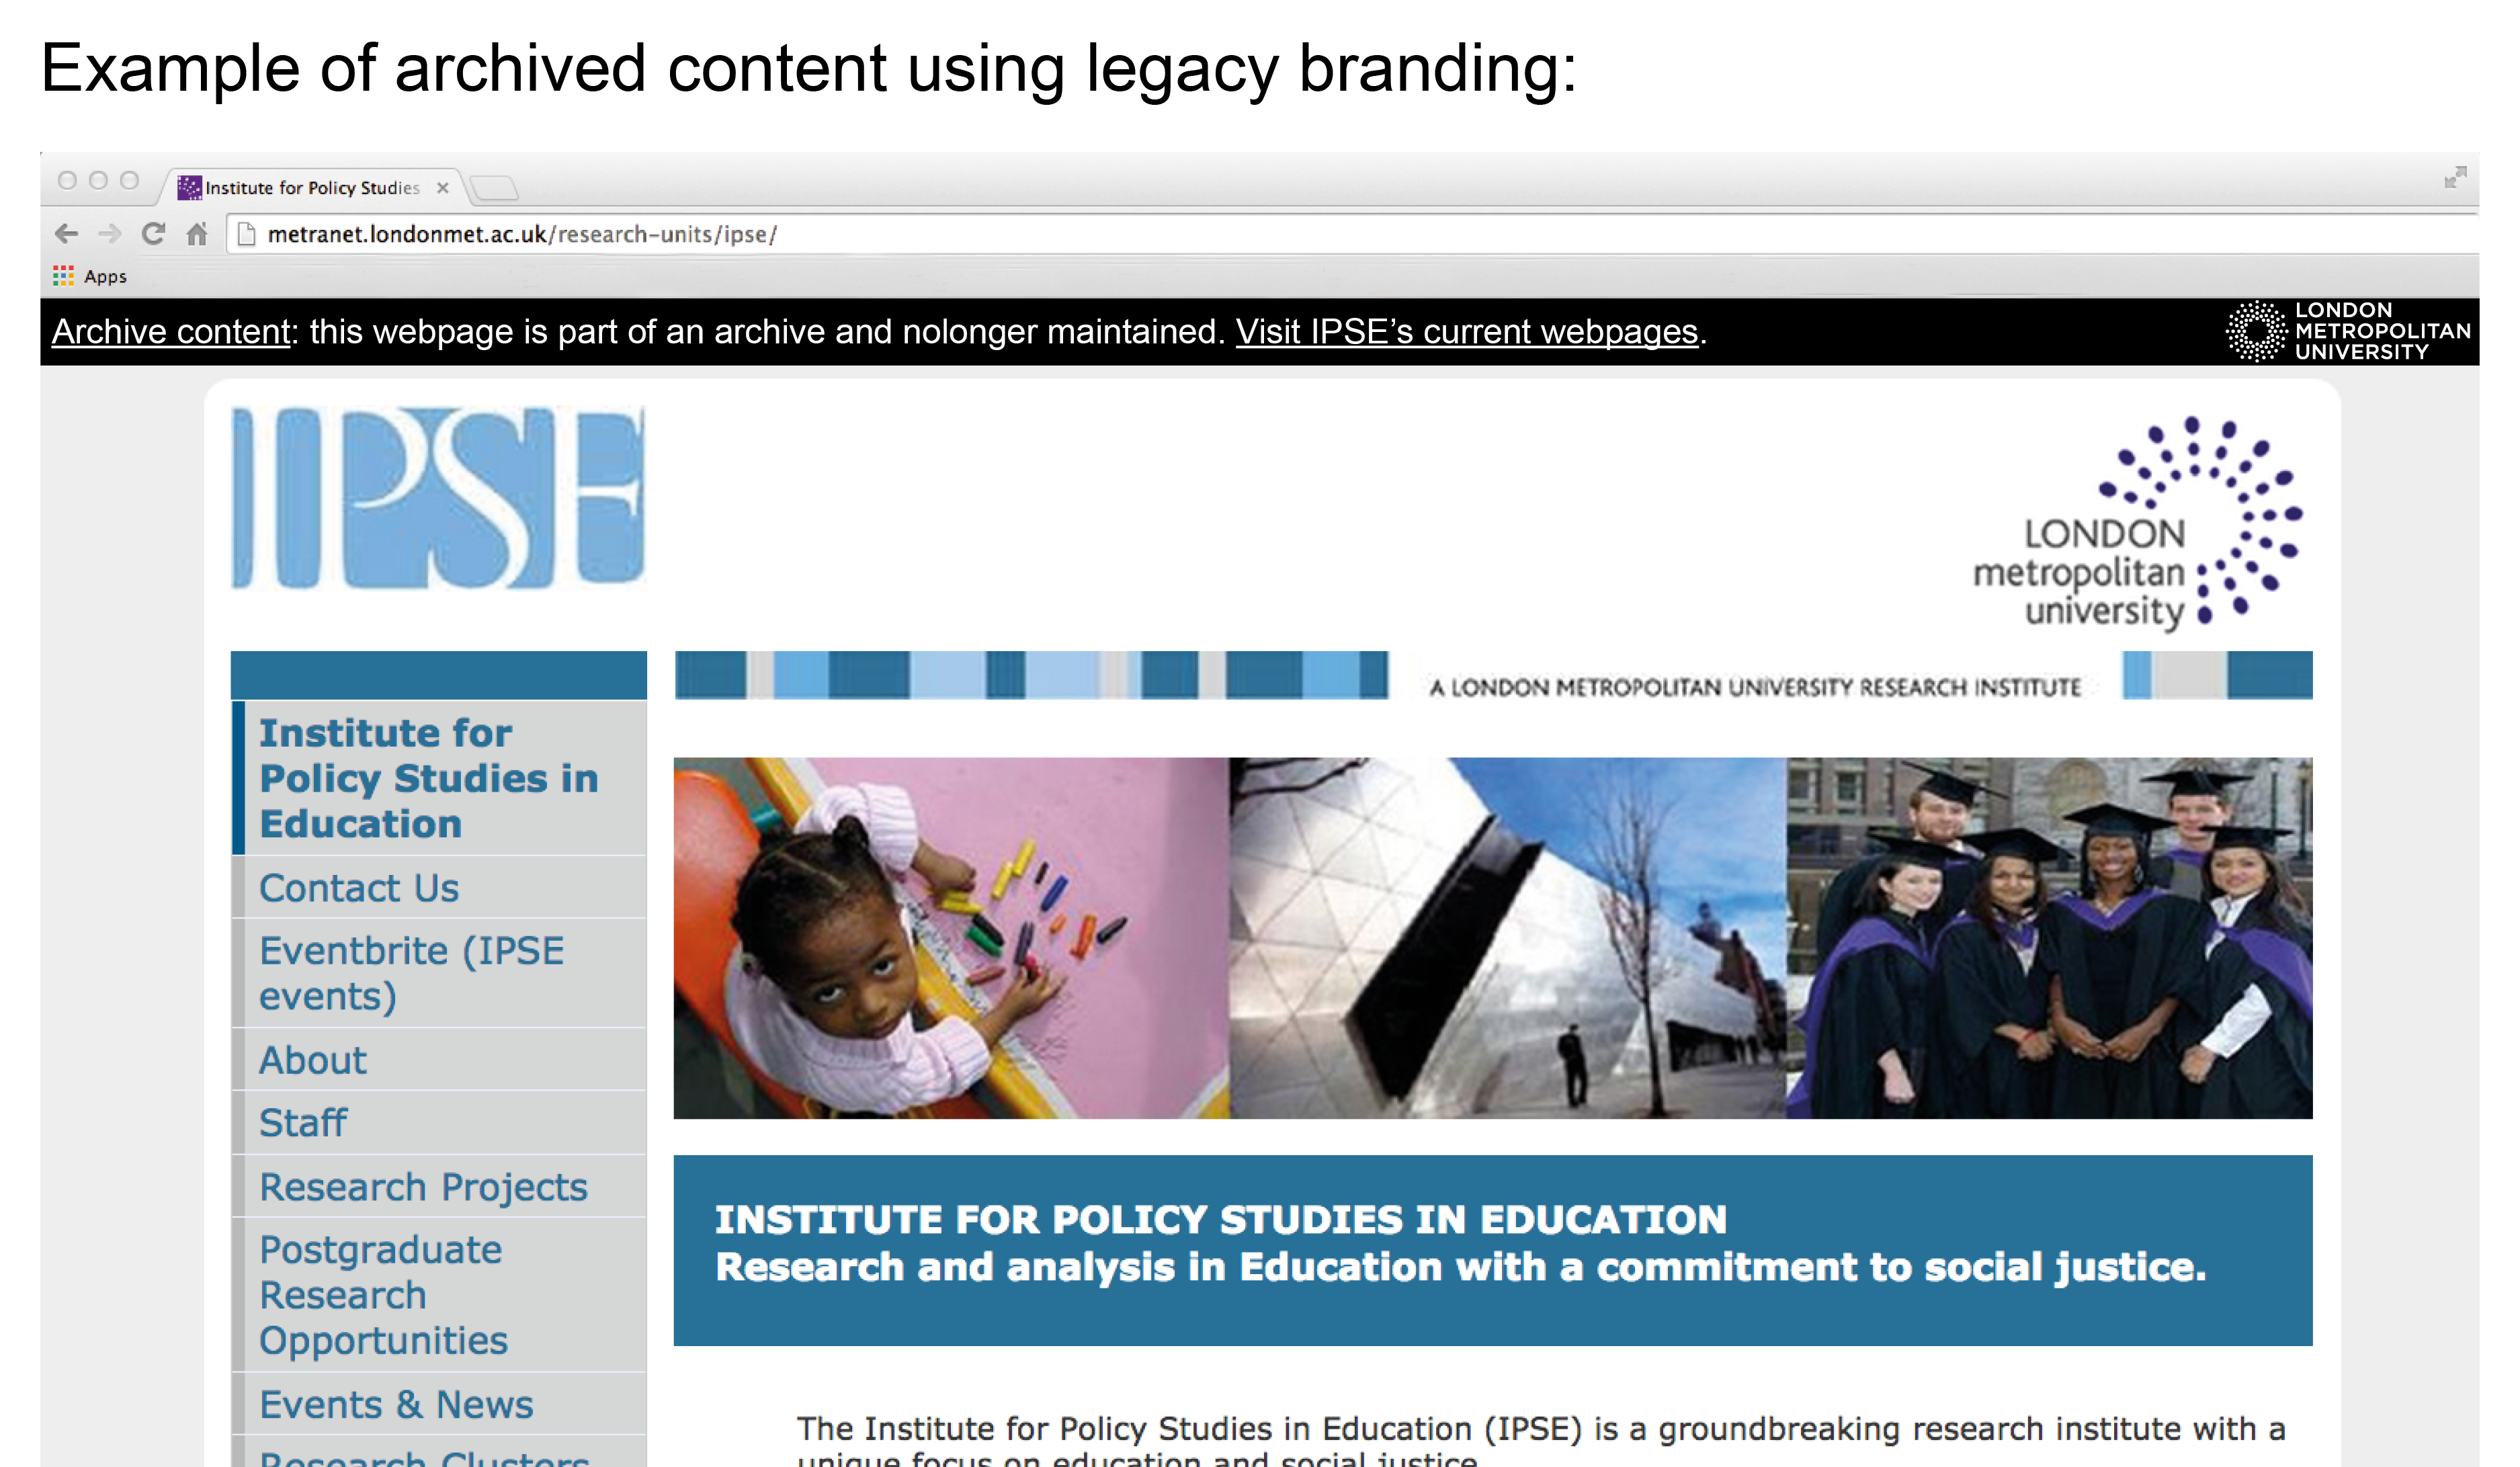 Example of archived web content